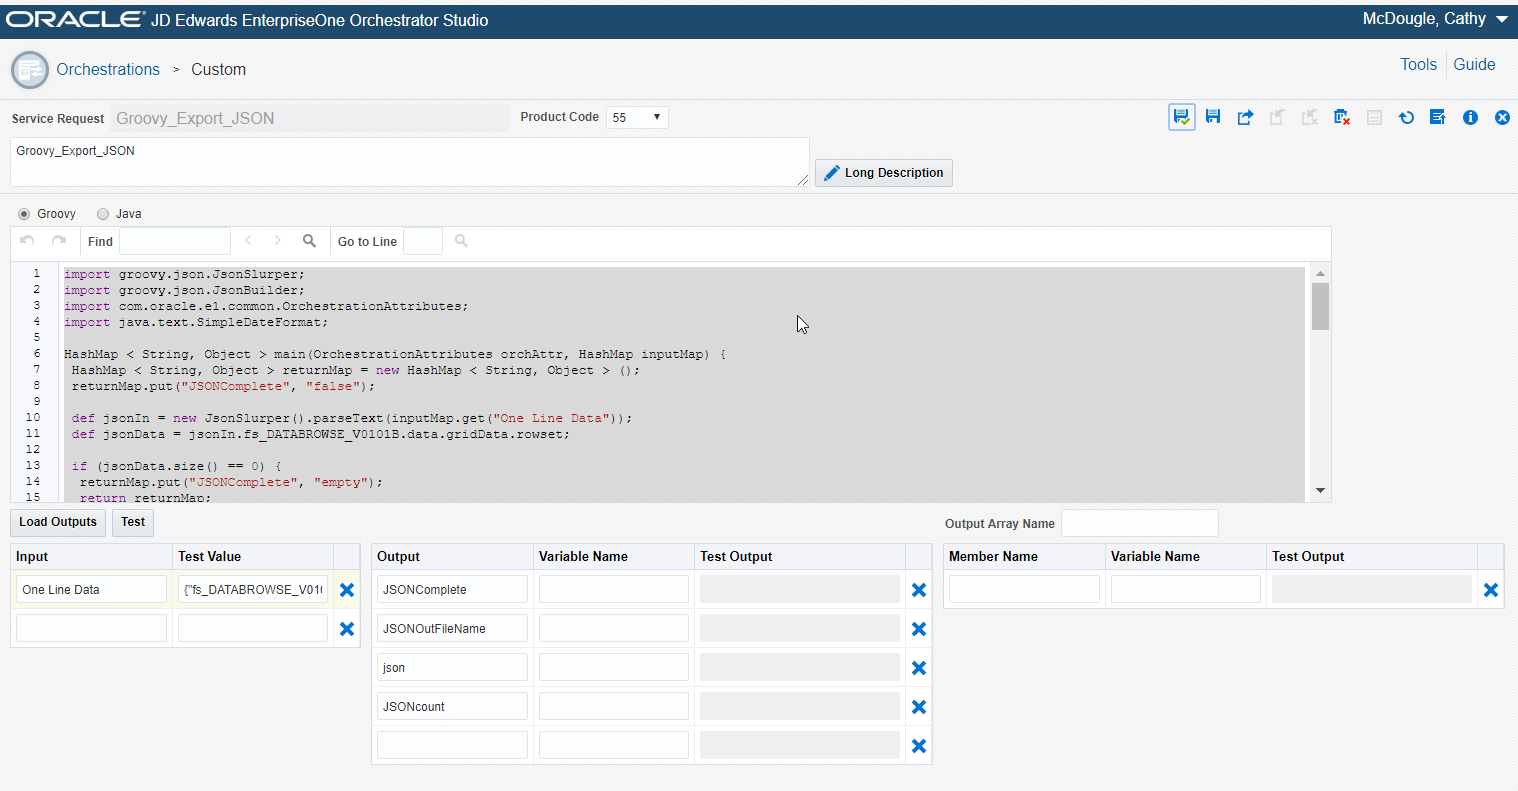 Creating an Orchestration to Export EnterpriseOne Data to CSV, JSON